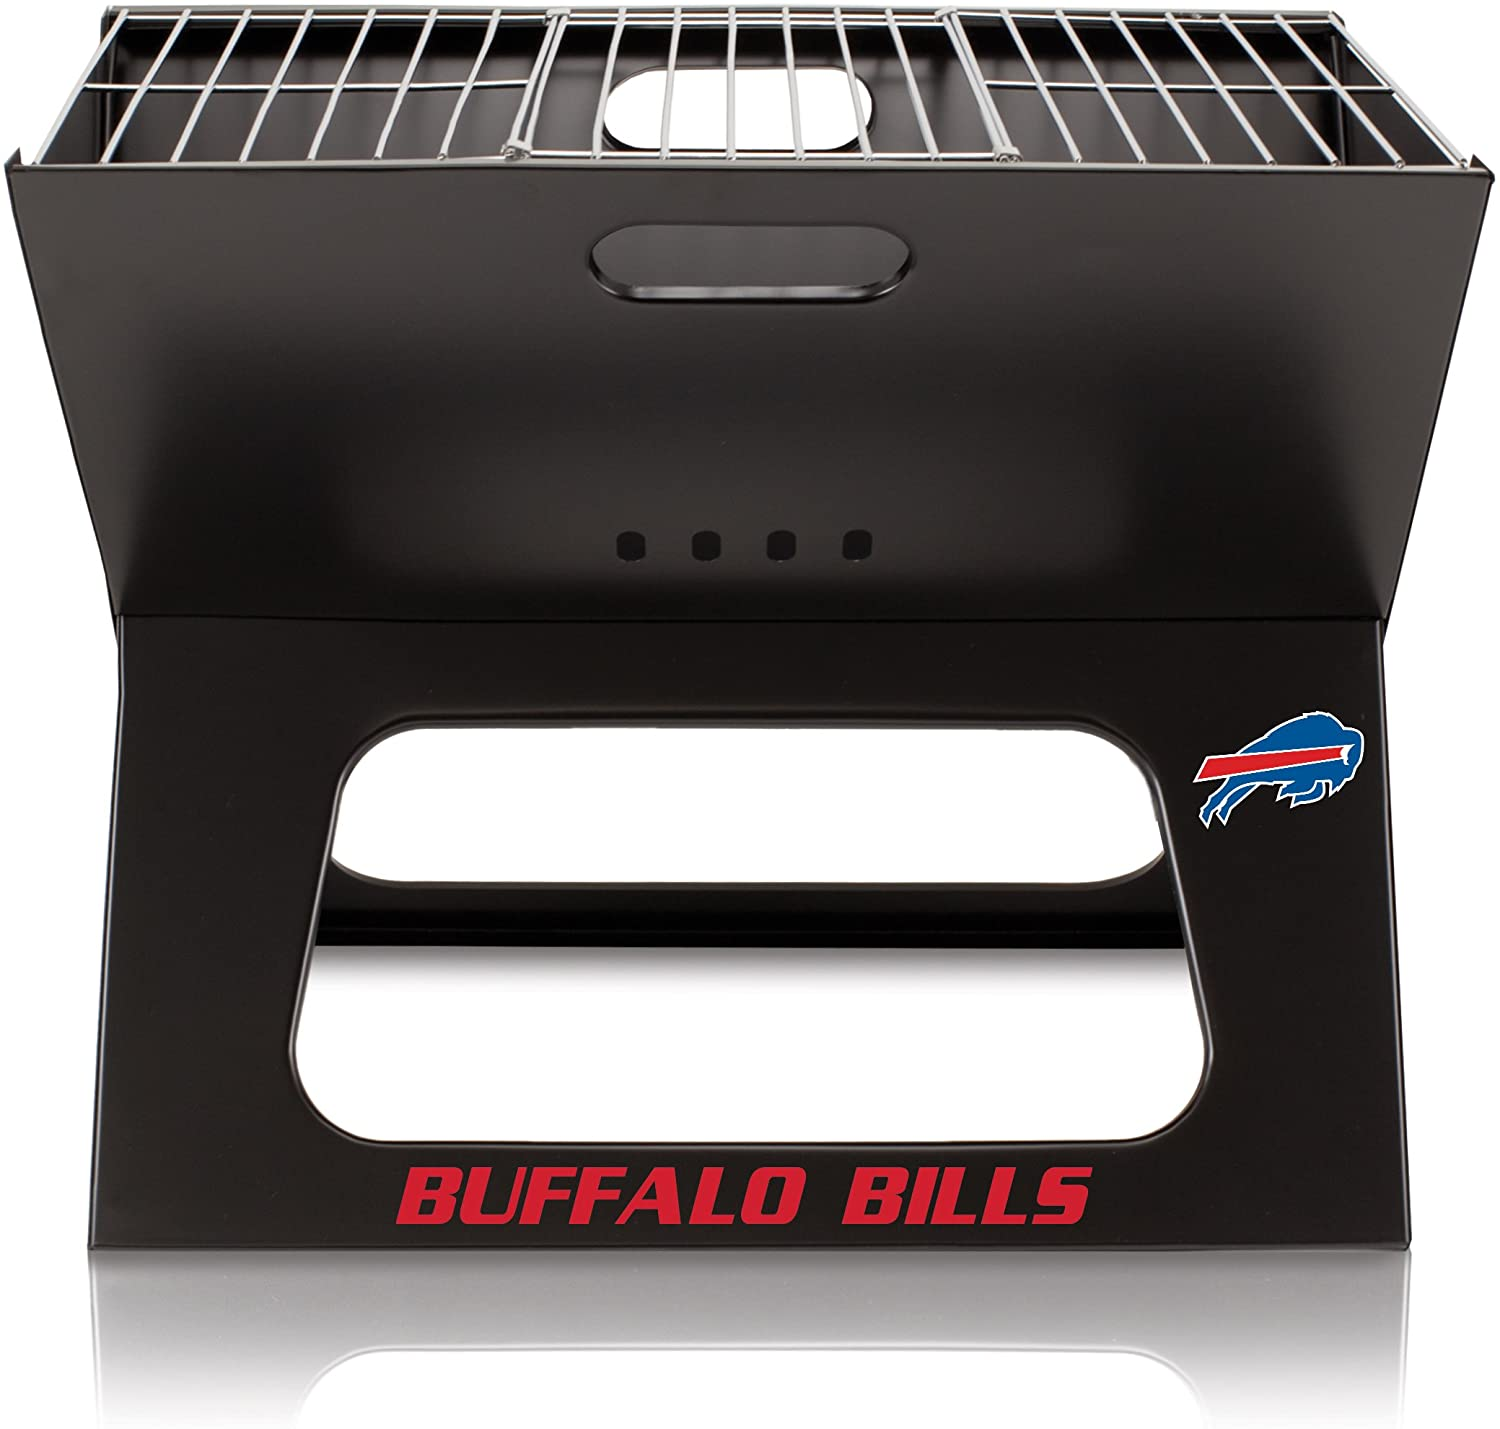 NFL Buffalo Bills Portable Collapsible Charcoal X-Grill